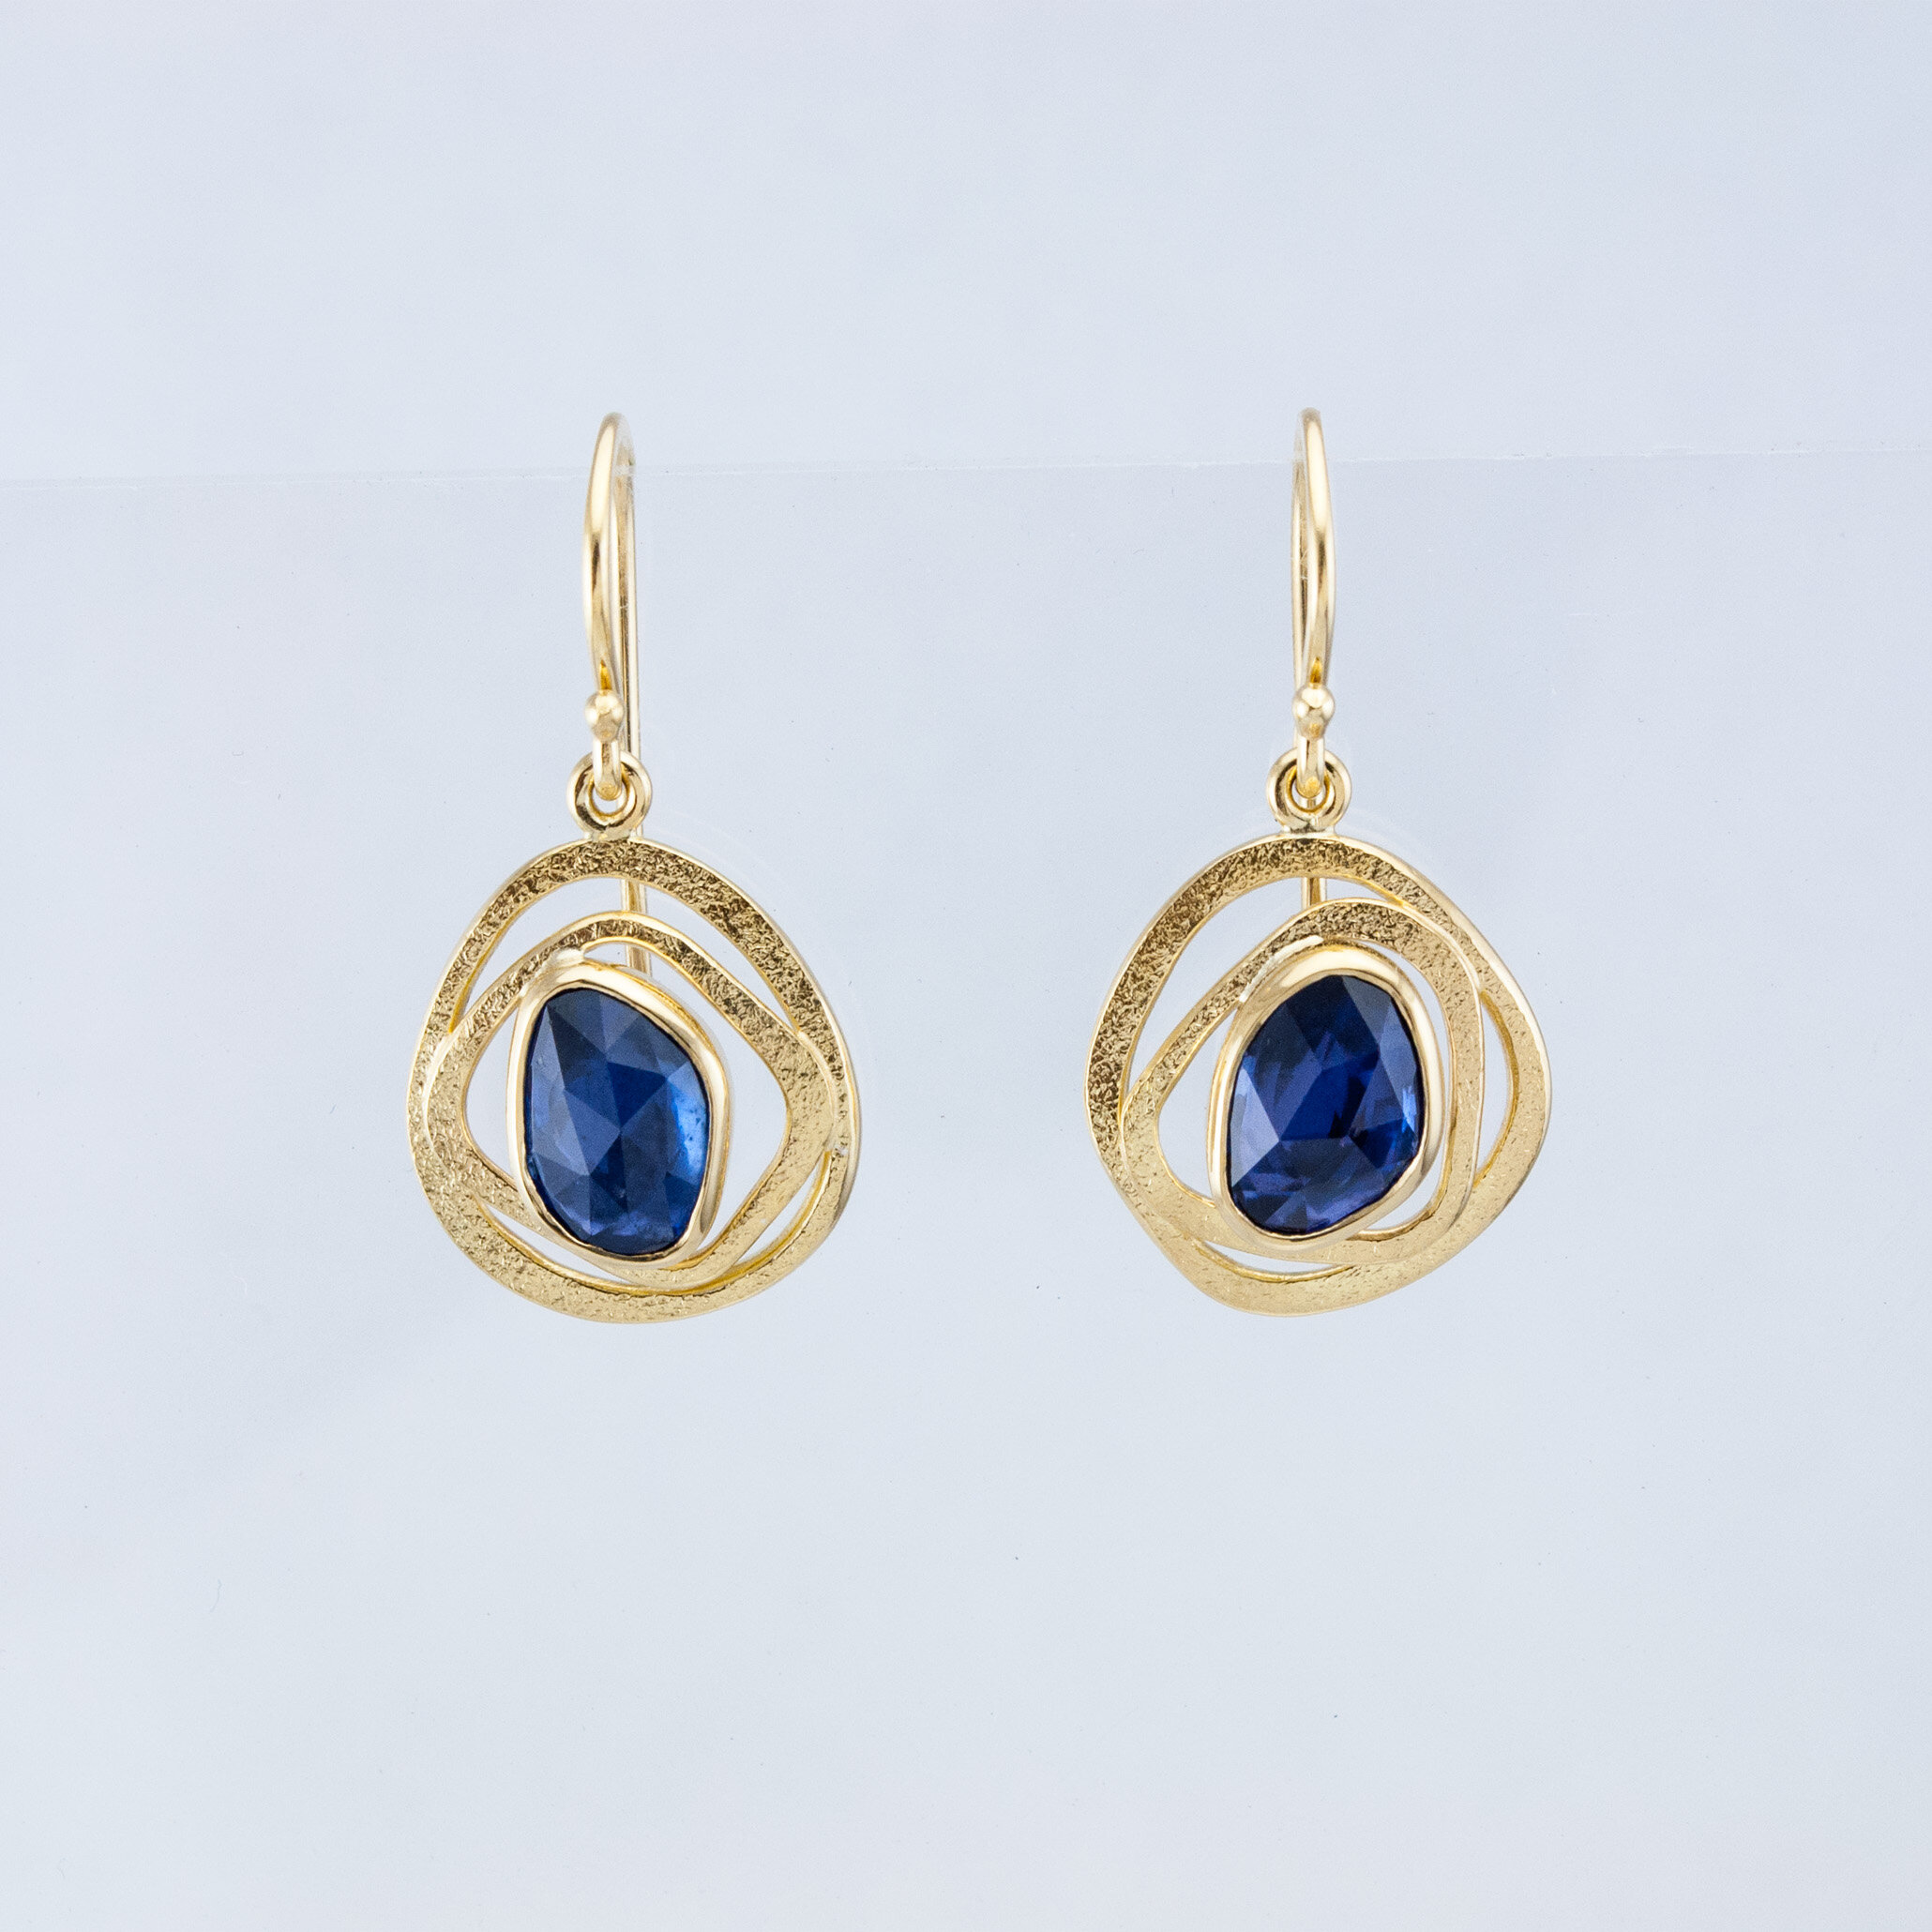 GEO Drops with Rose-cut Sapphires